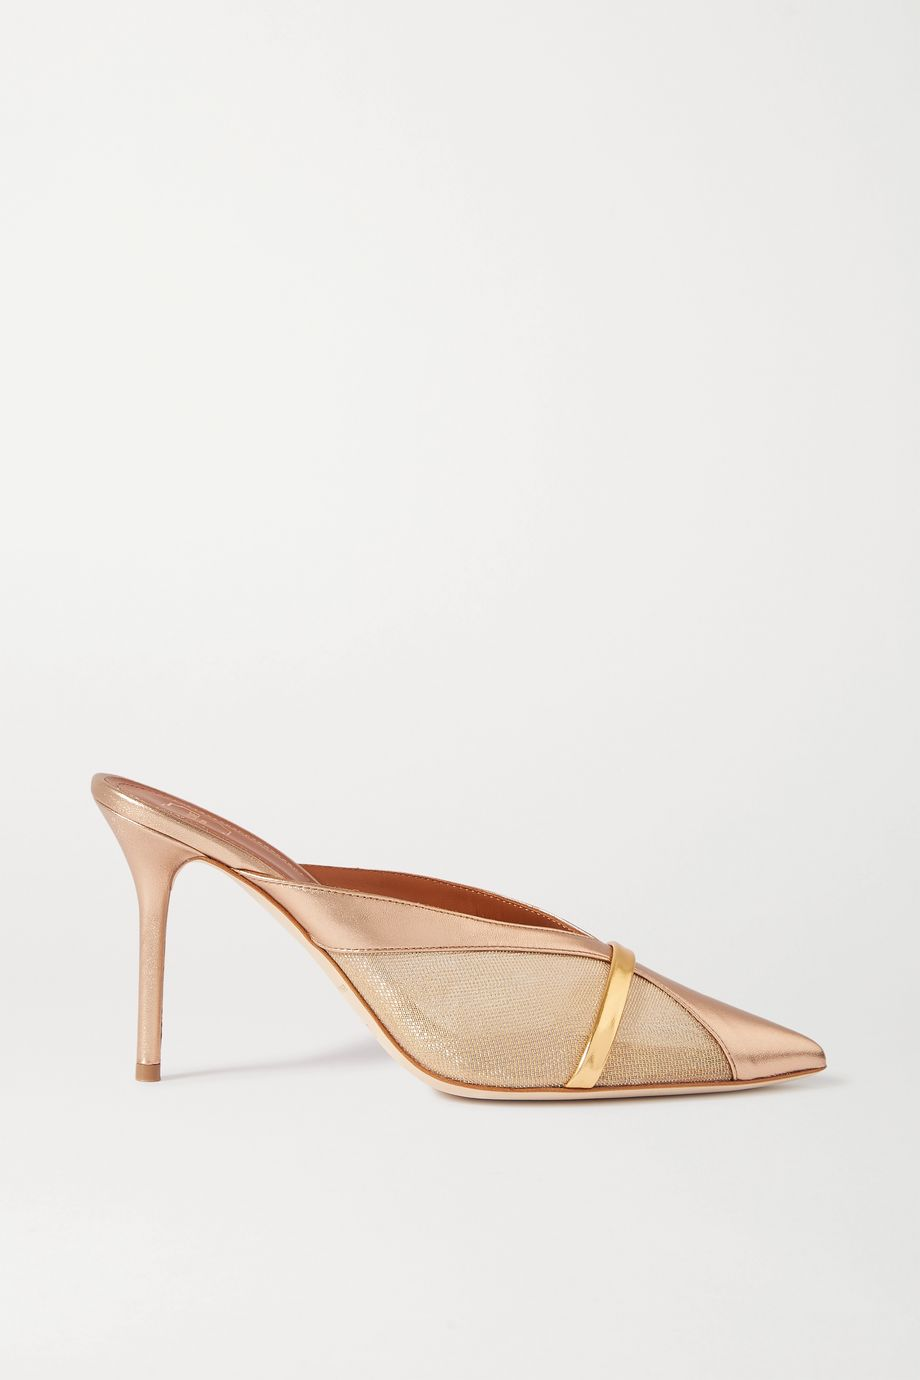 Malone Souliers Bobbi 85 metallic mesh and leather mules